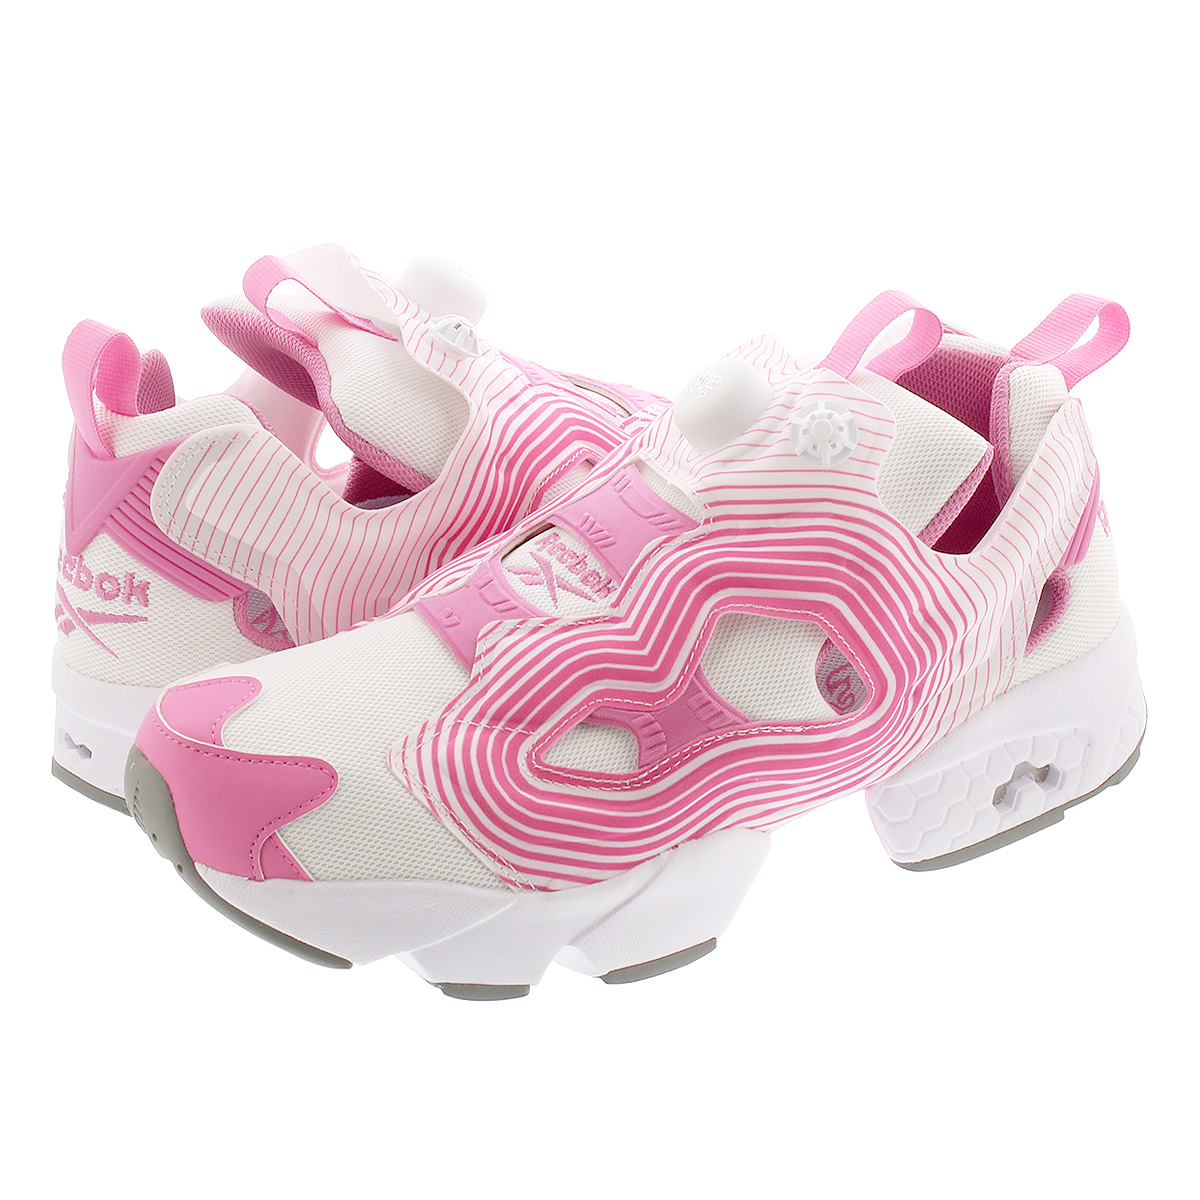 Reebok INSTA PUMP FURY OG NM リーボック インスタ ポンプ フューリー OG NM WHITE/POSH PINK/PURE GREY fv4502